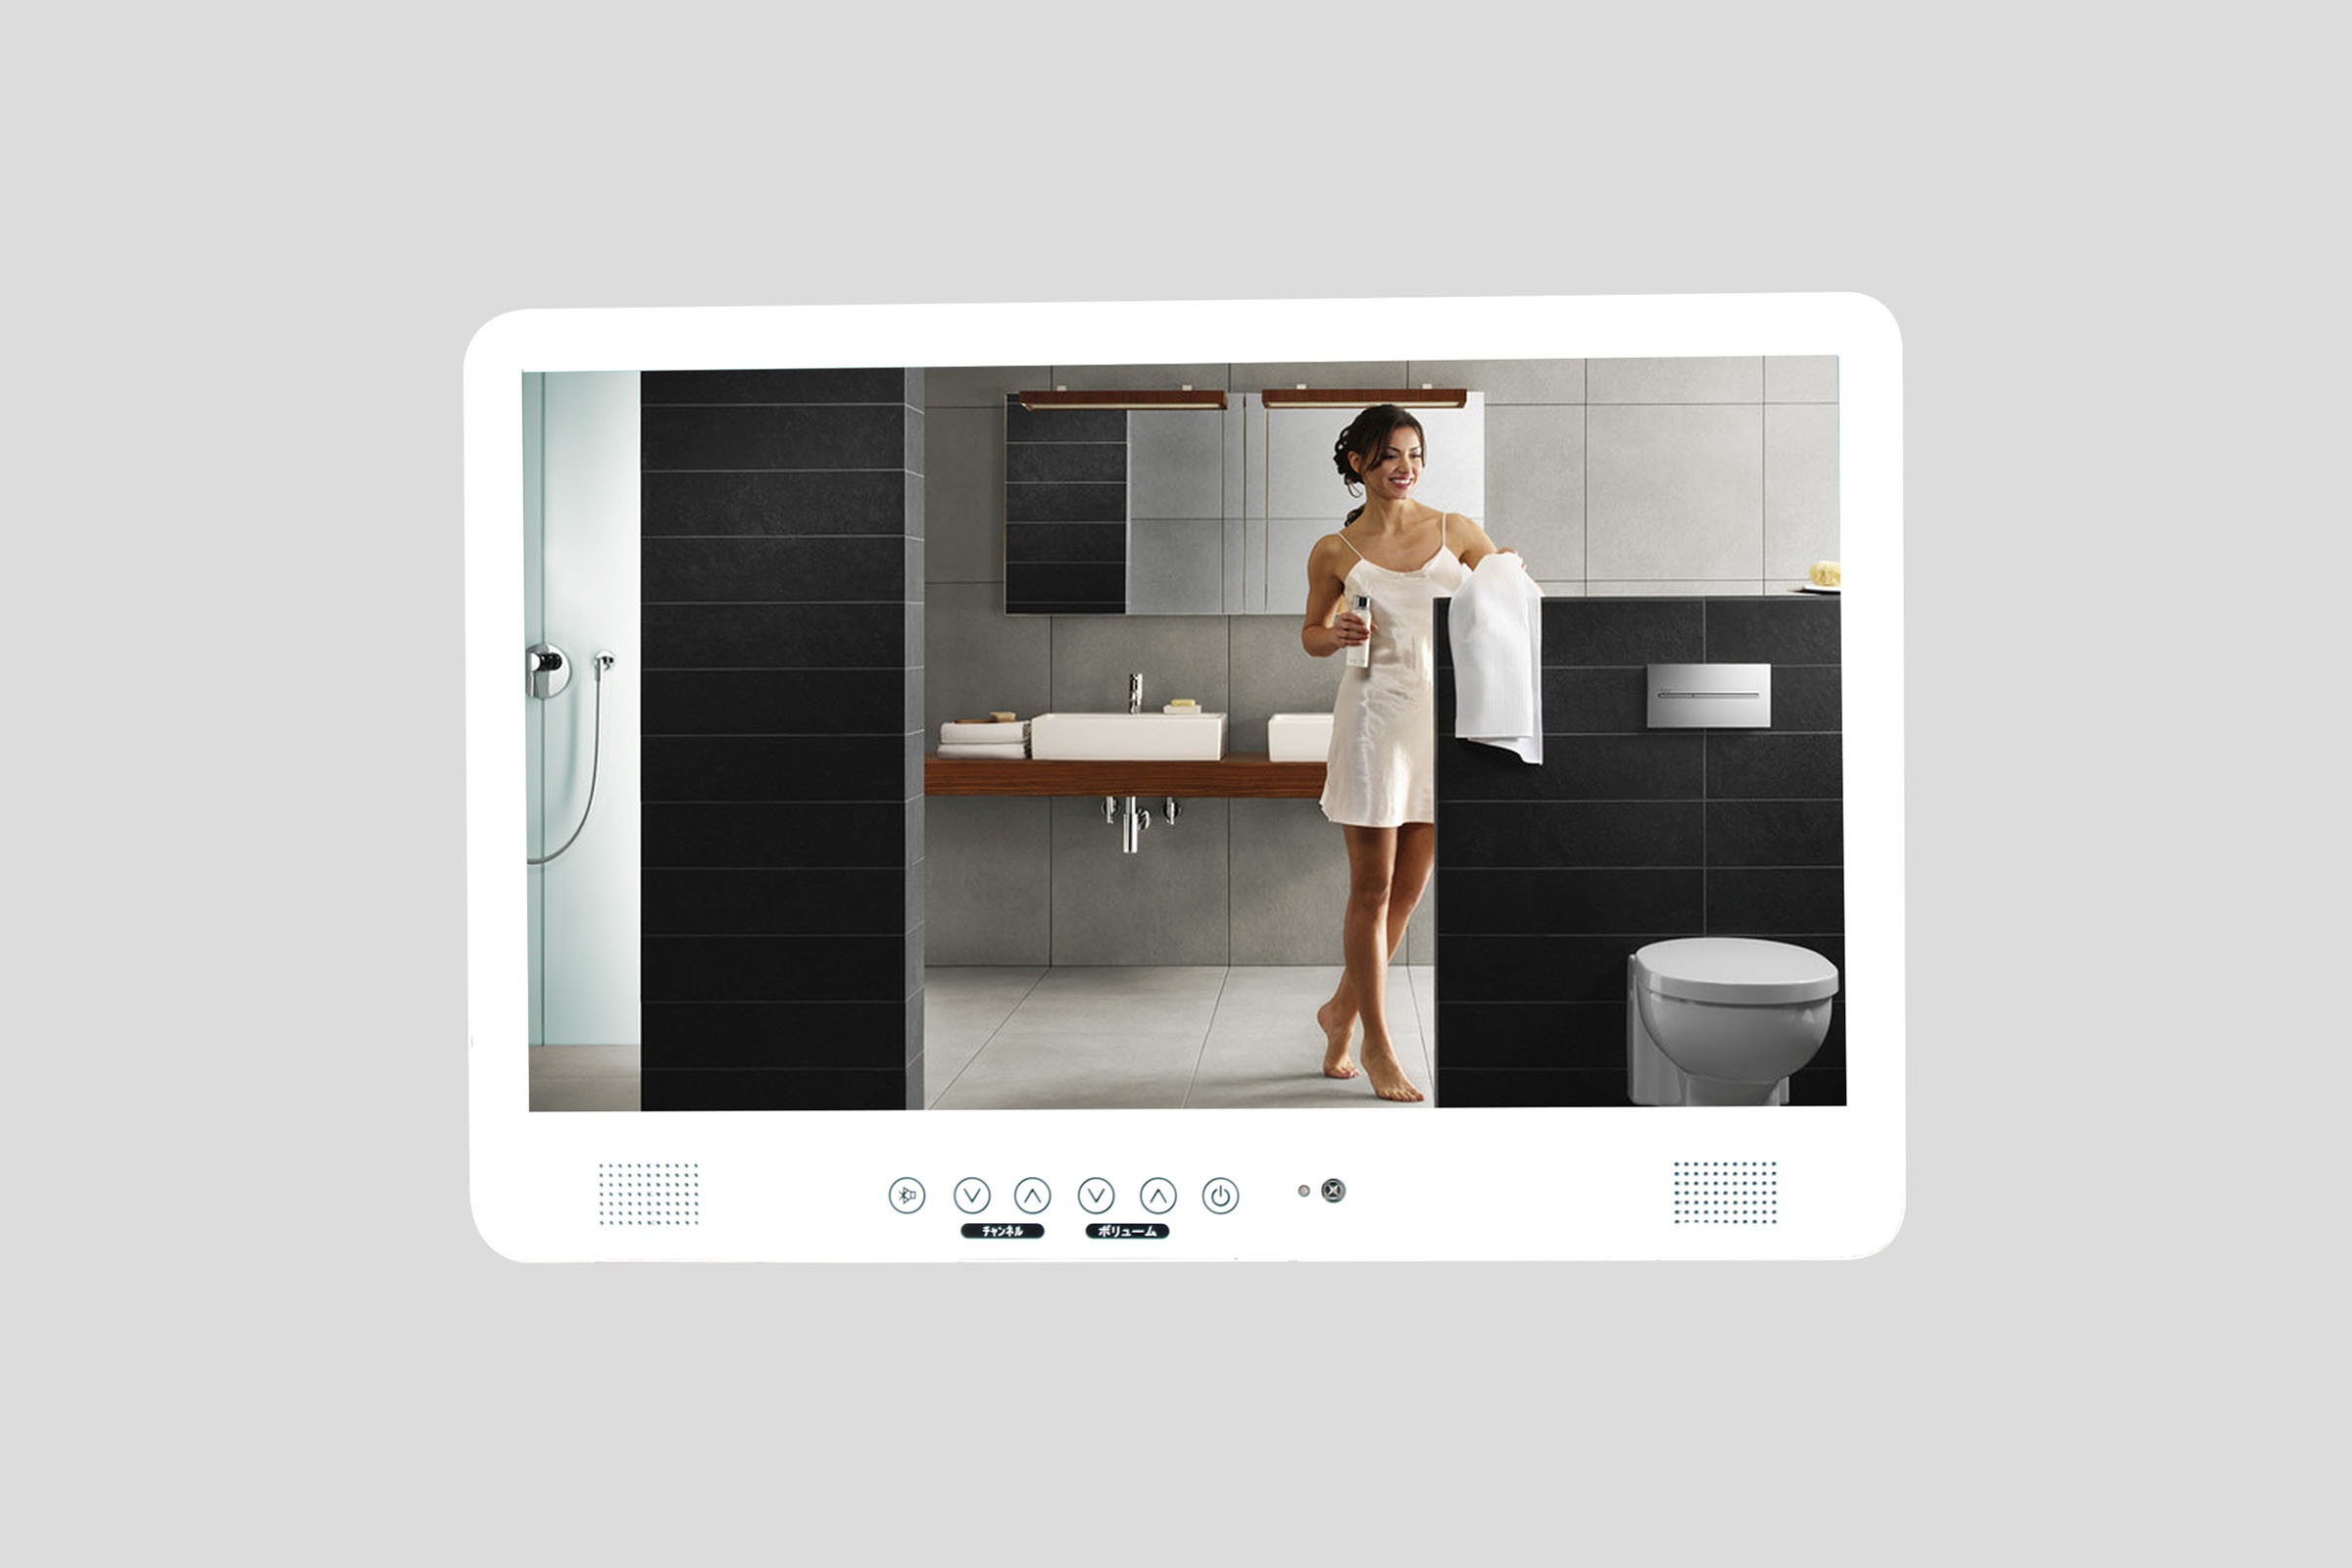 19 42 Inch LED TV Waterproof Bathroom Mirror Shower Room